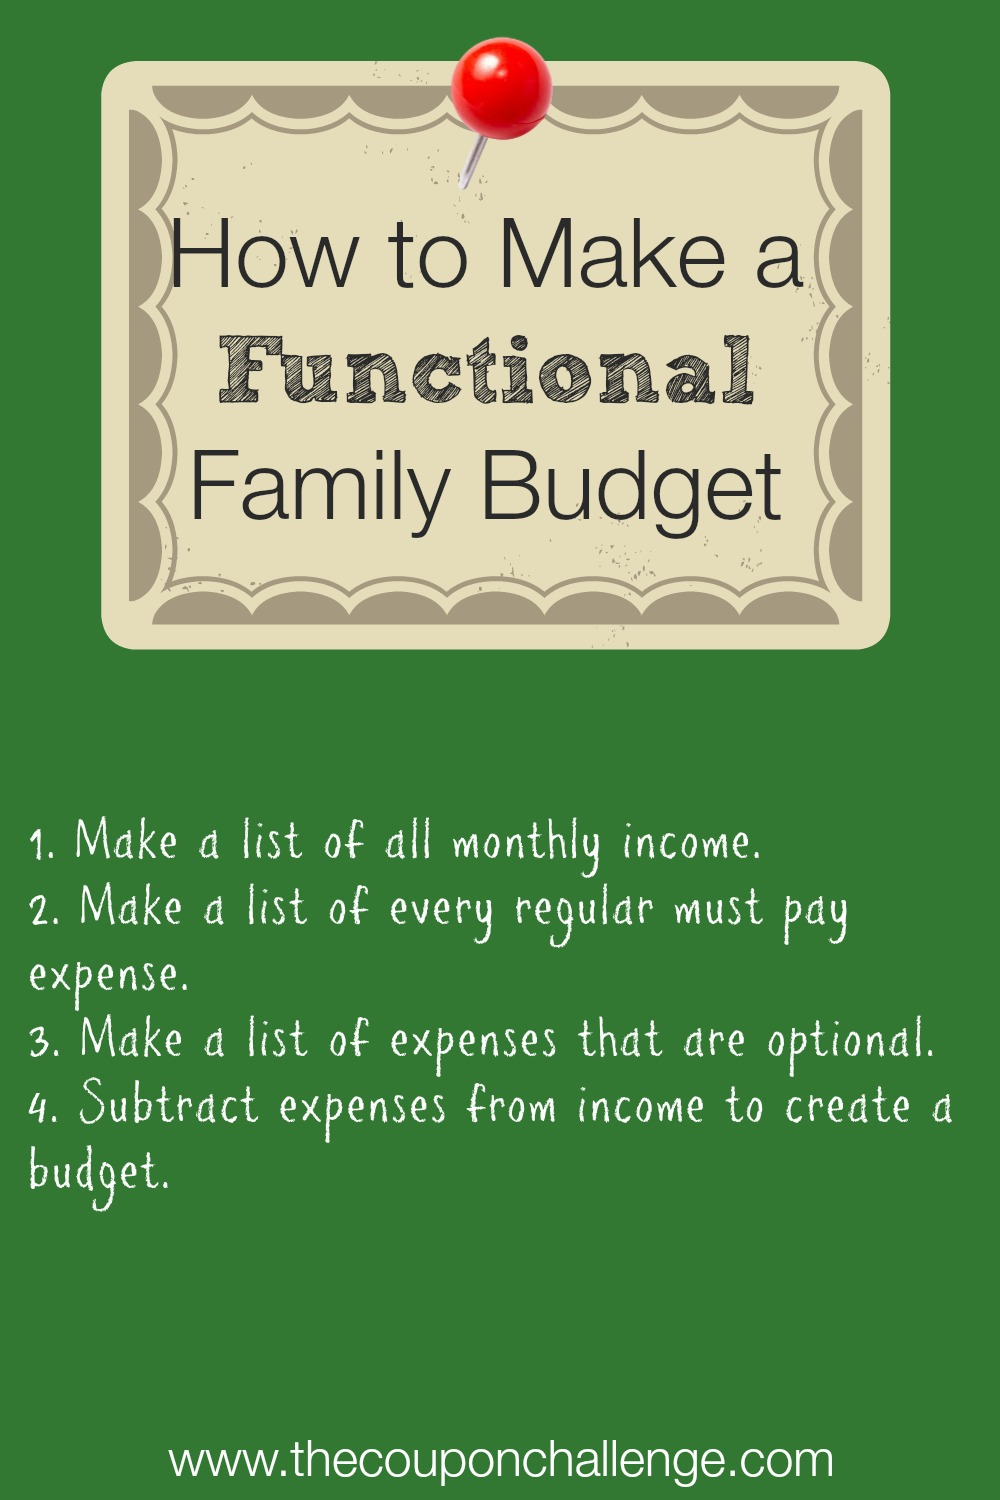 How to Make a Functional Family Budget